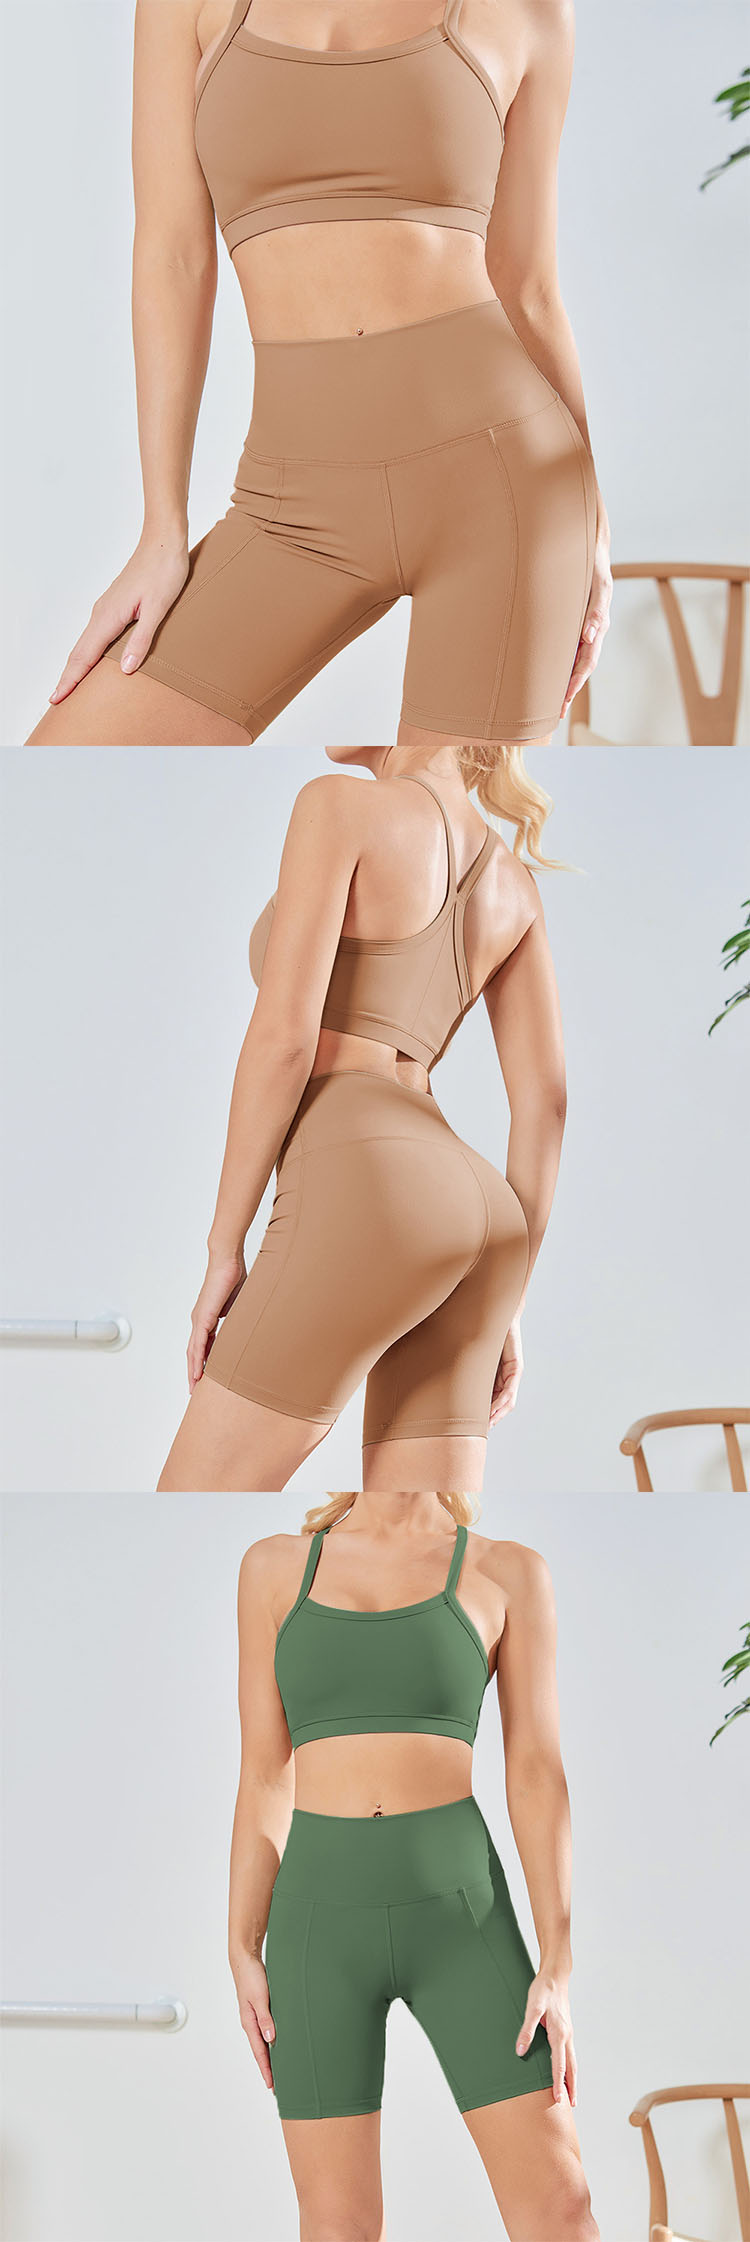 The high-waisted design wraps the belly fat and looks slim.